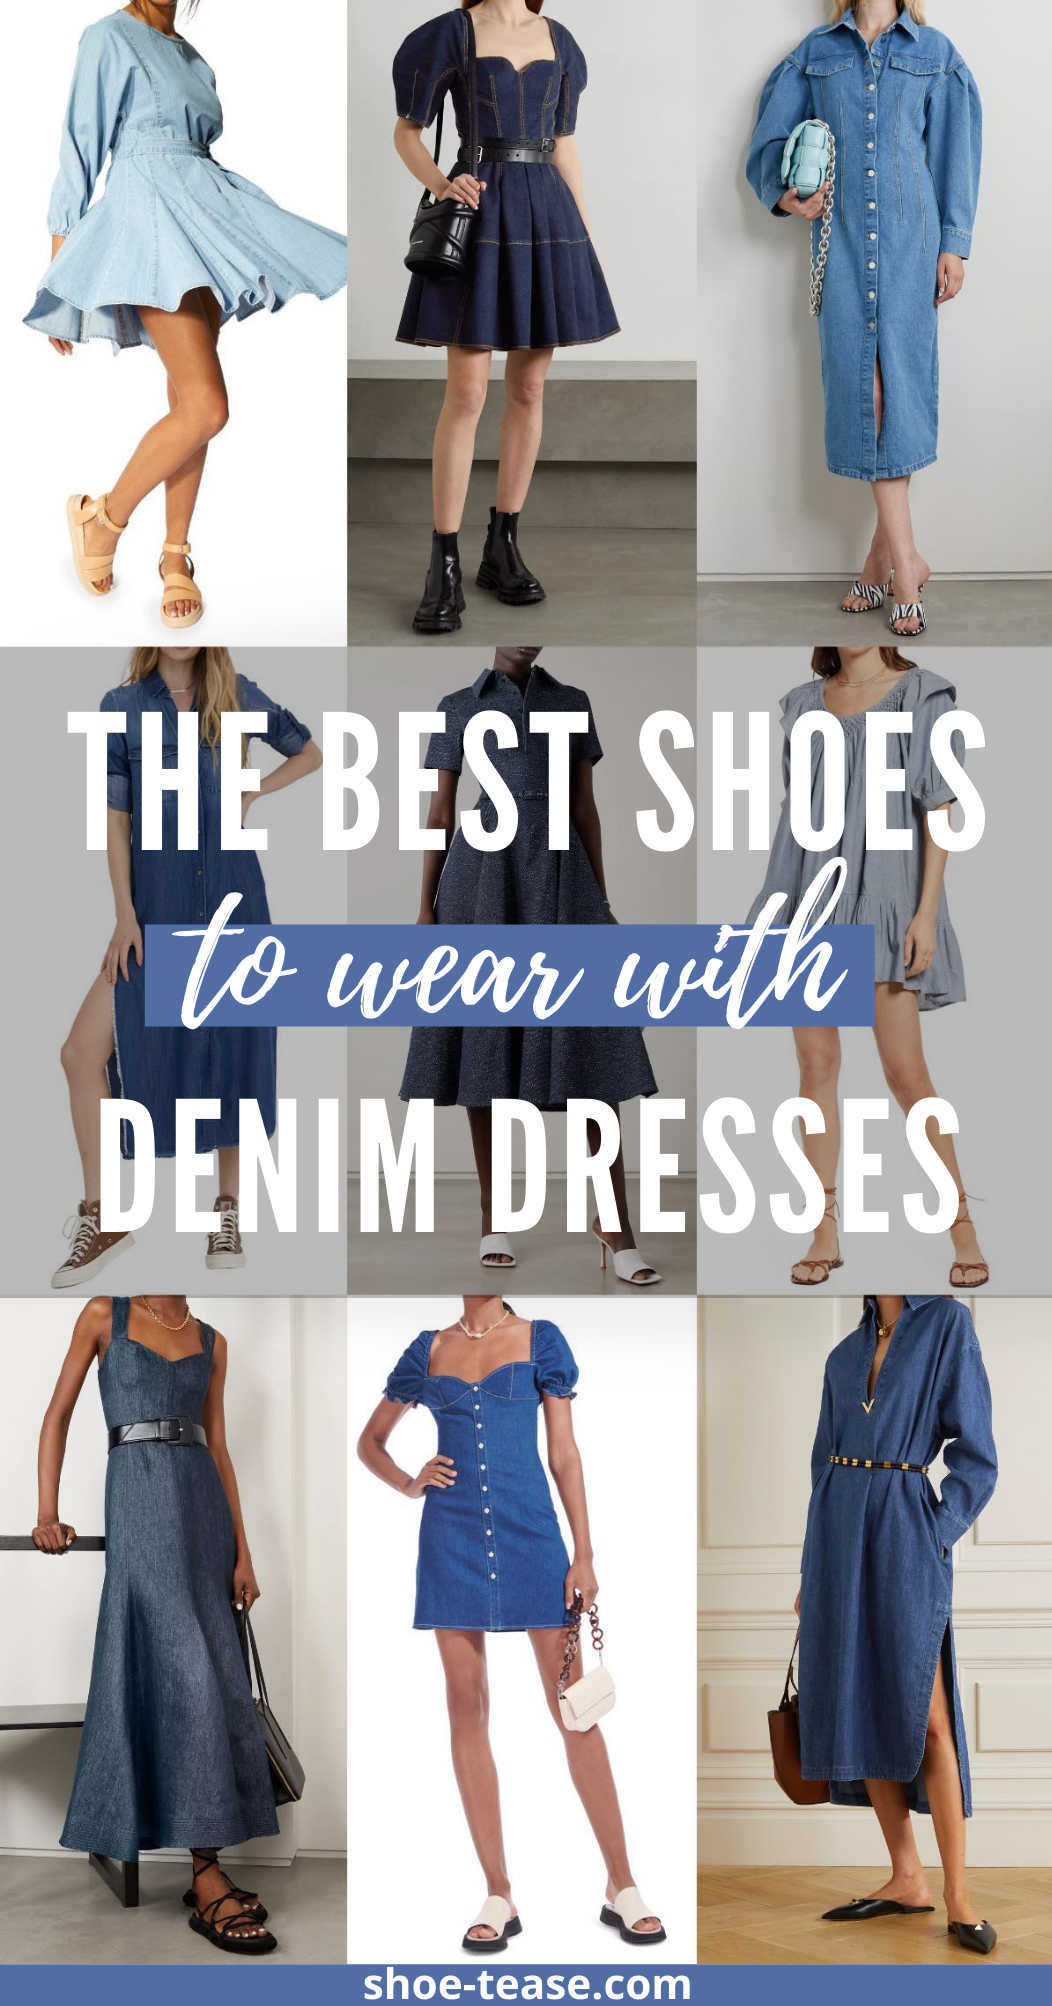 Collage of models illustrating what Shoes to wear with a denim dress.